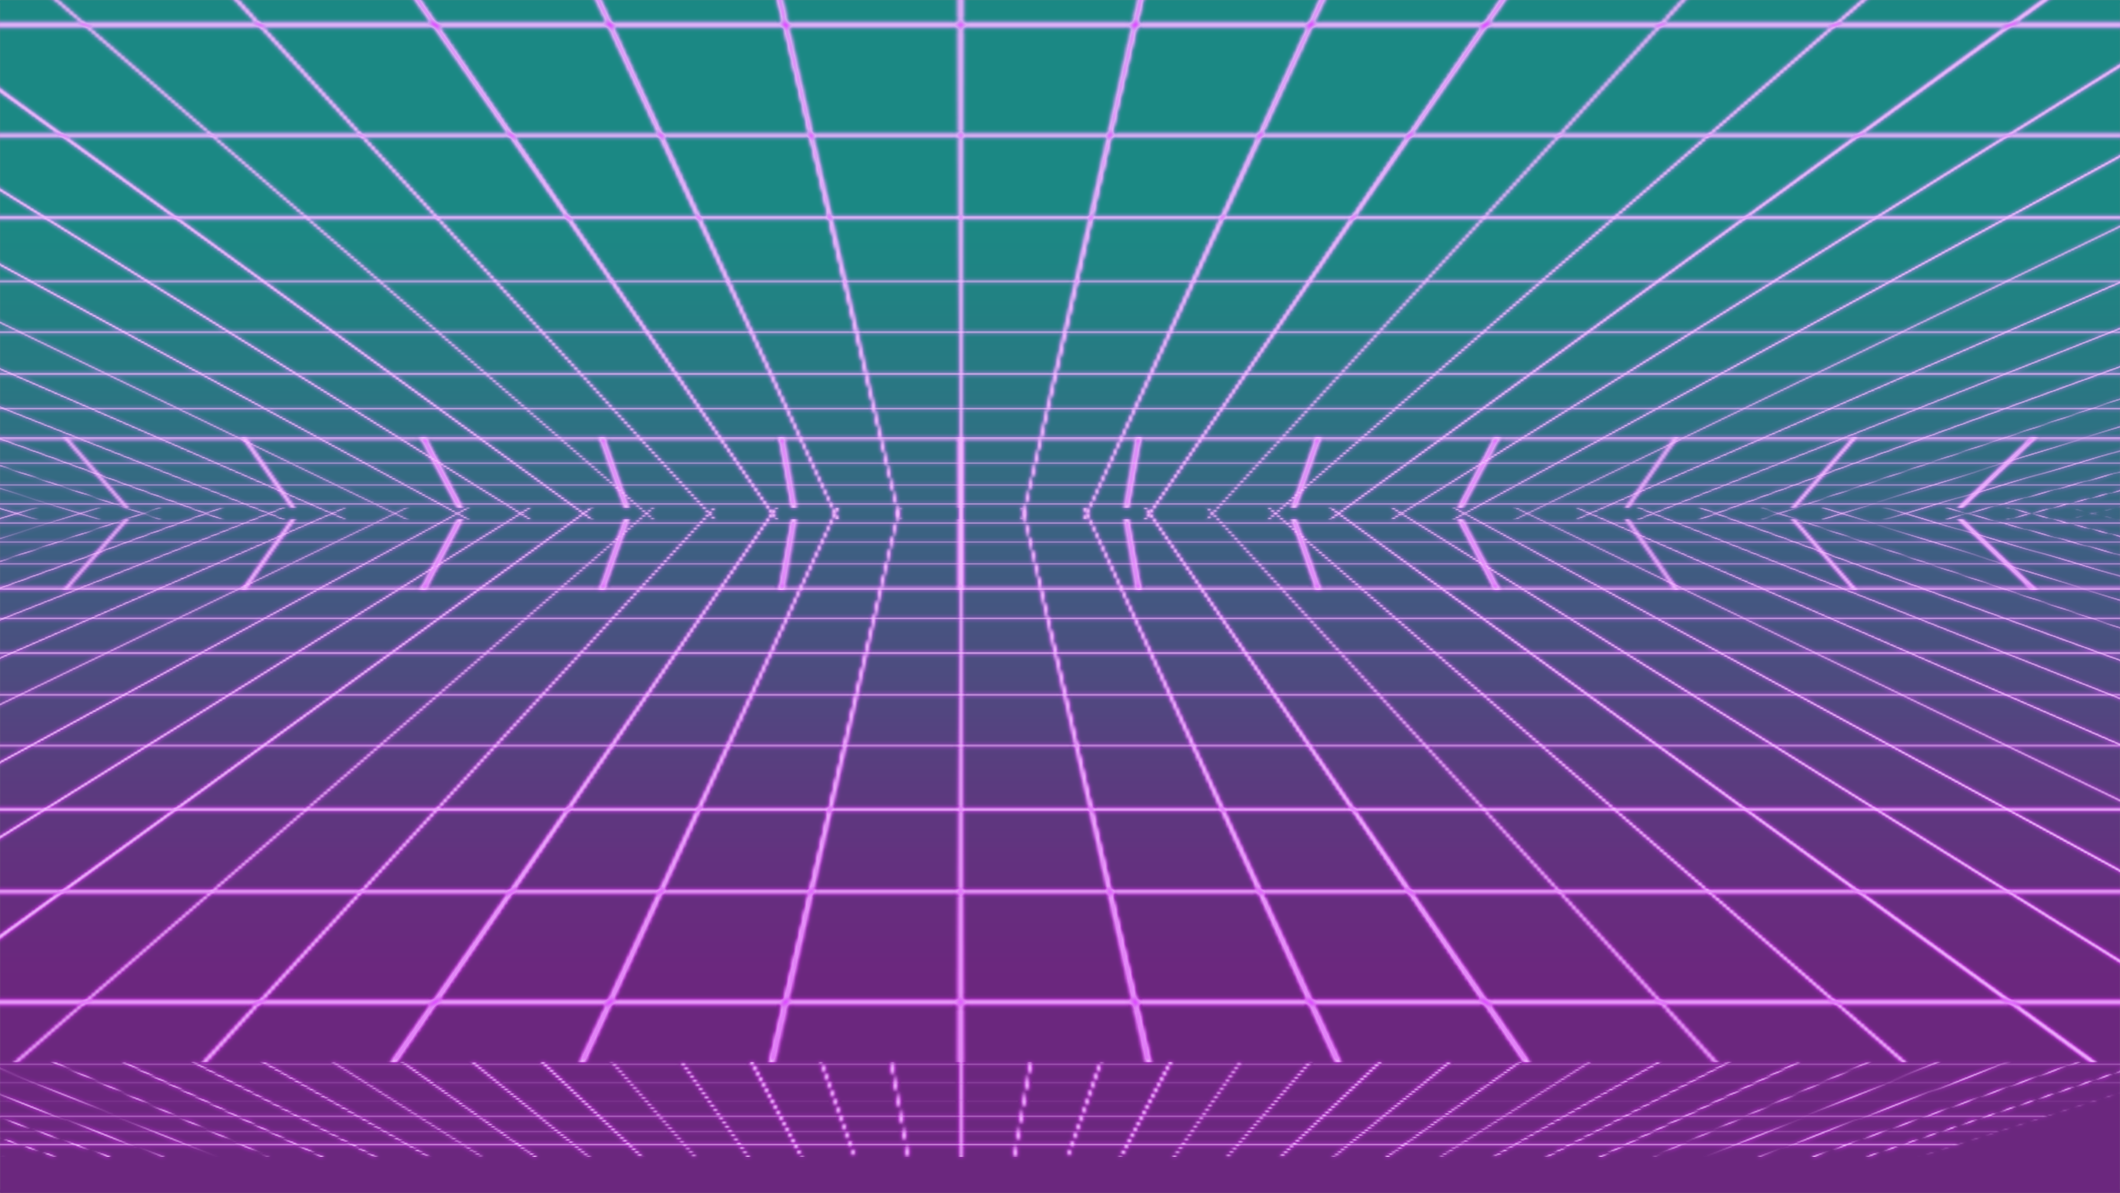 vaporwave template April.onthemarch.co